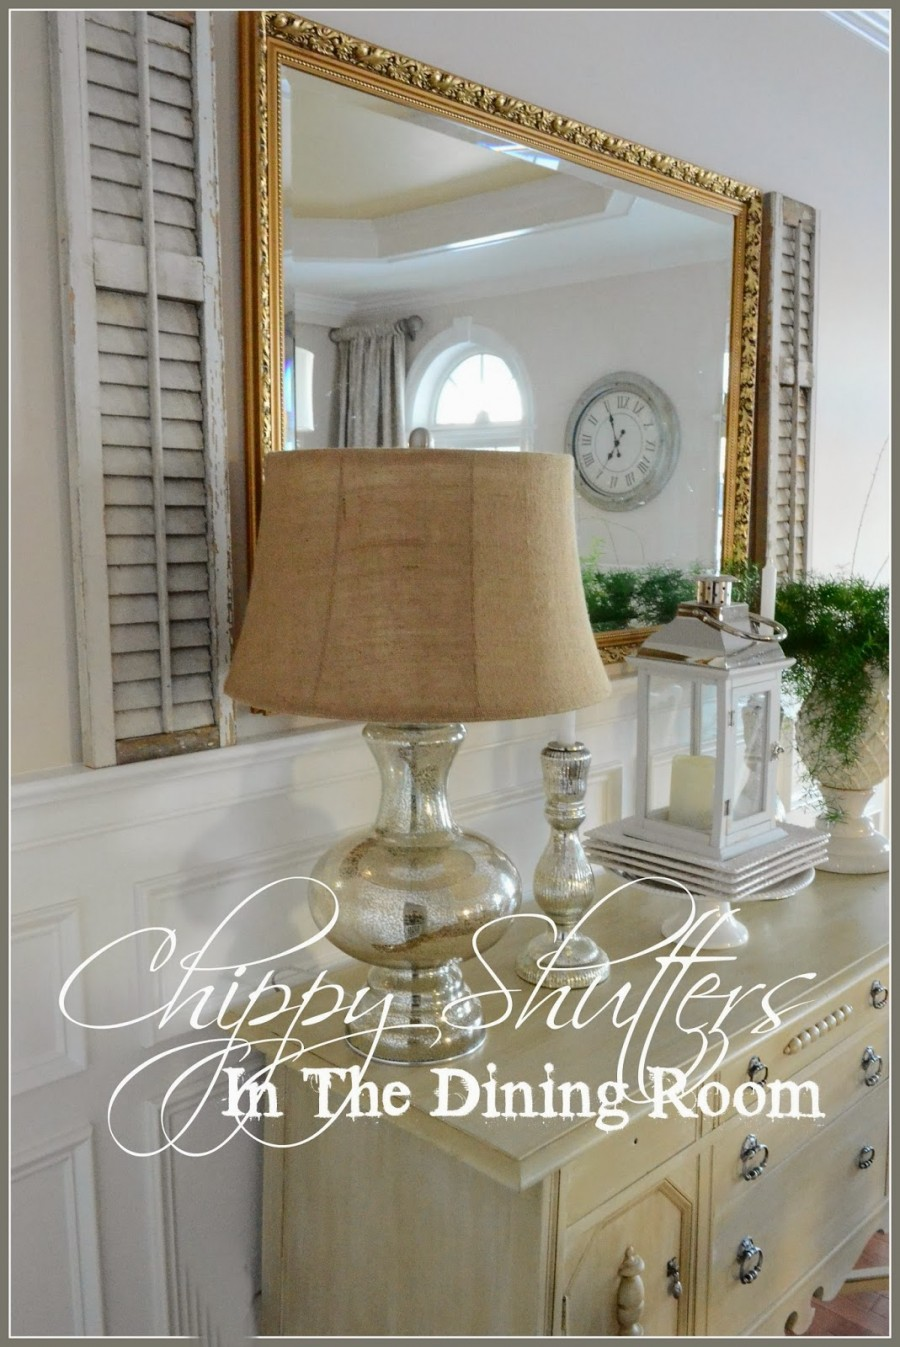 CHIPPY SHUTTERS IN THE DINING ROOM